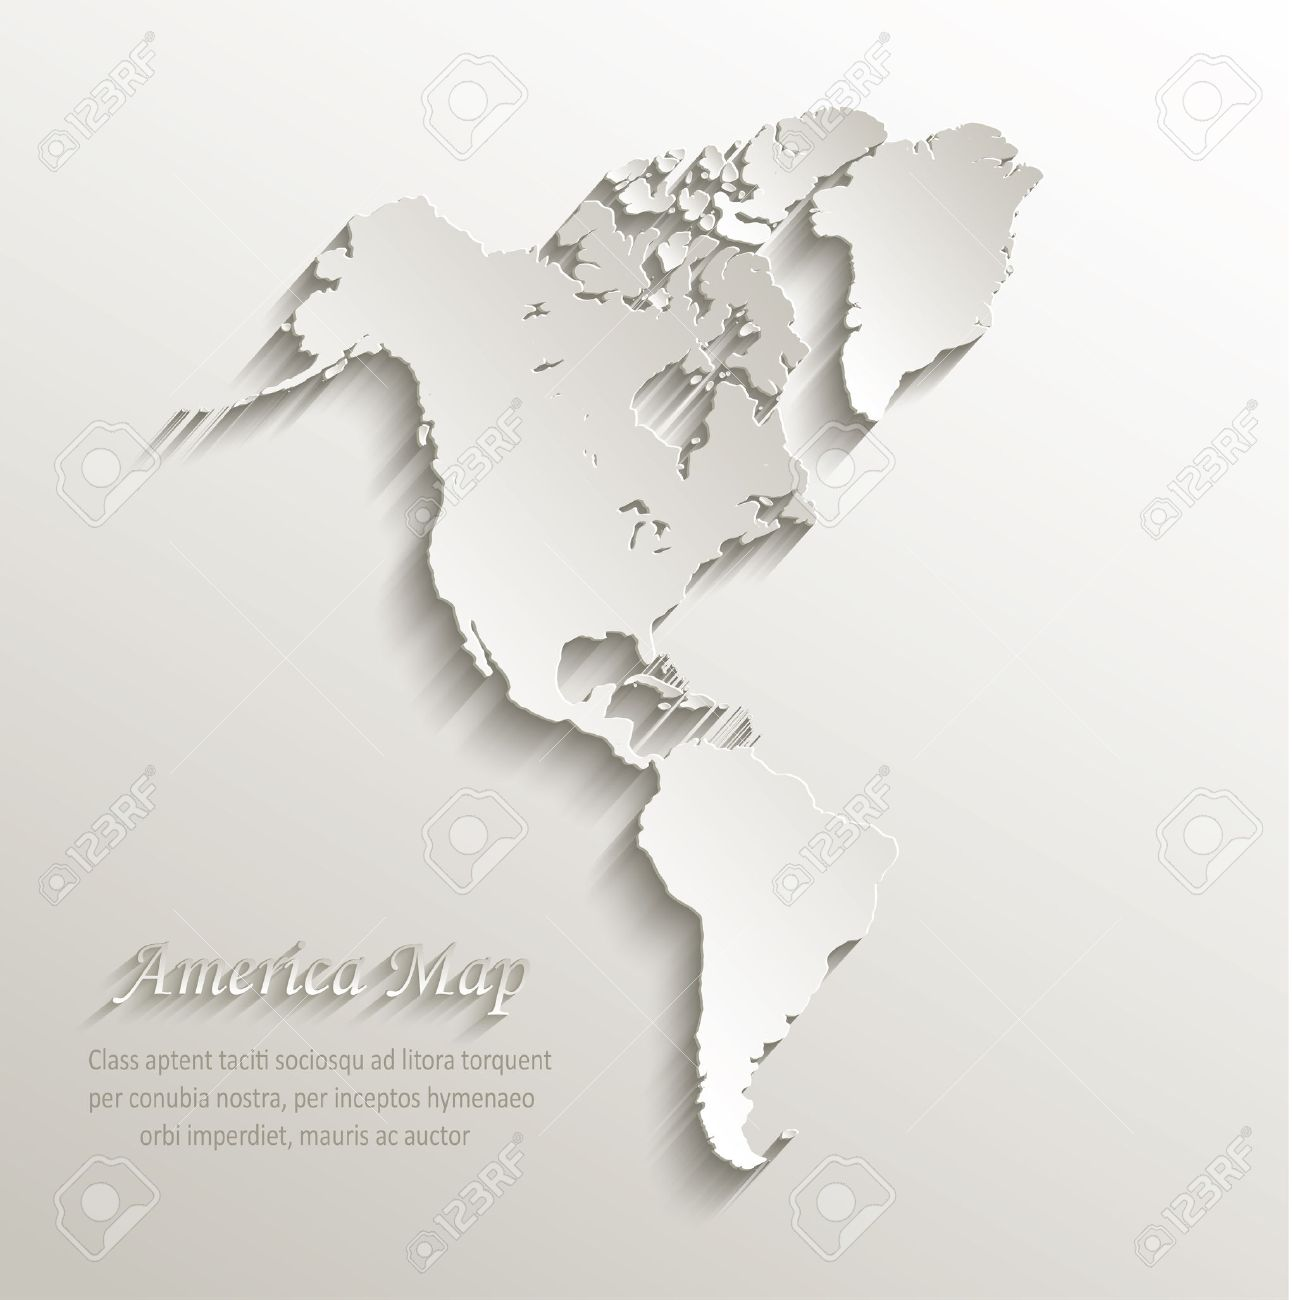 Map Of America 3d Vector.America Map Continent Card Paper 3d Vector